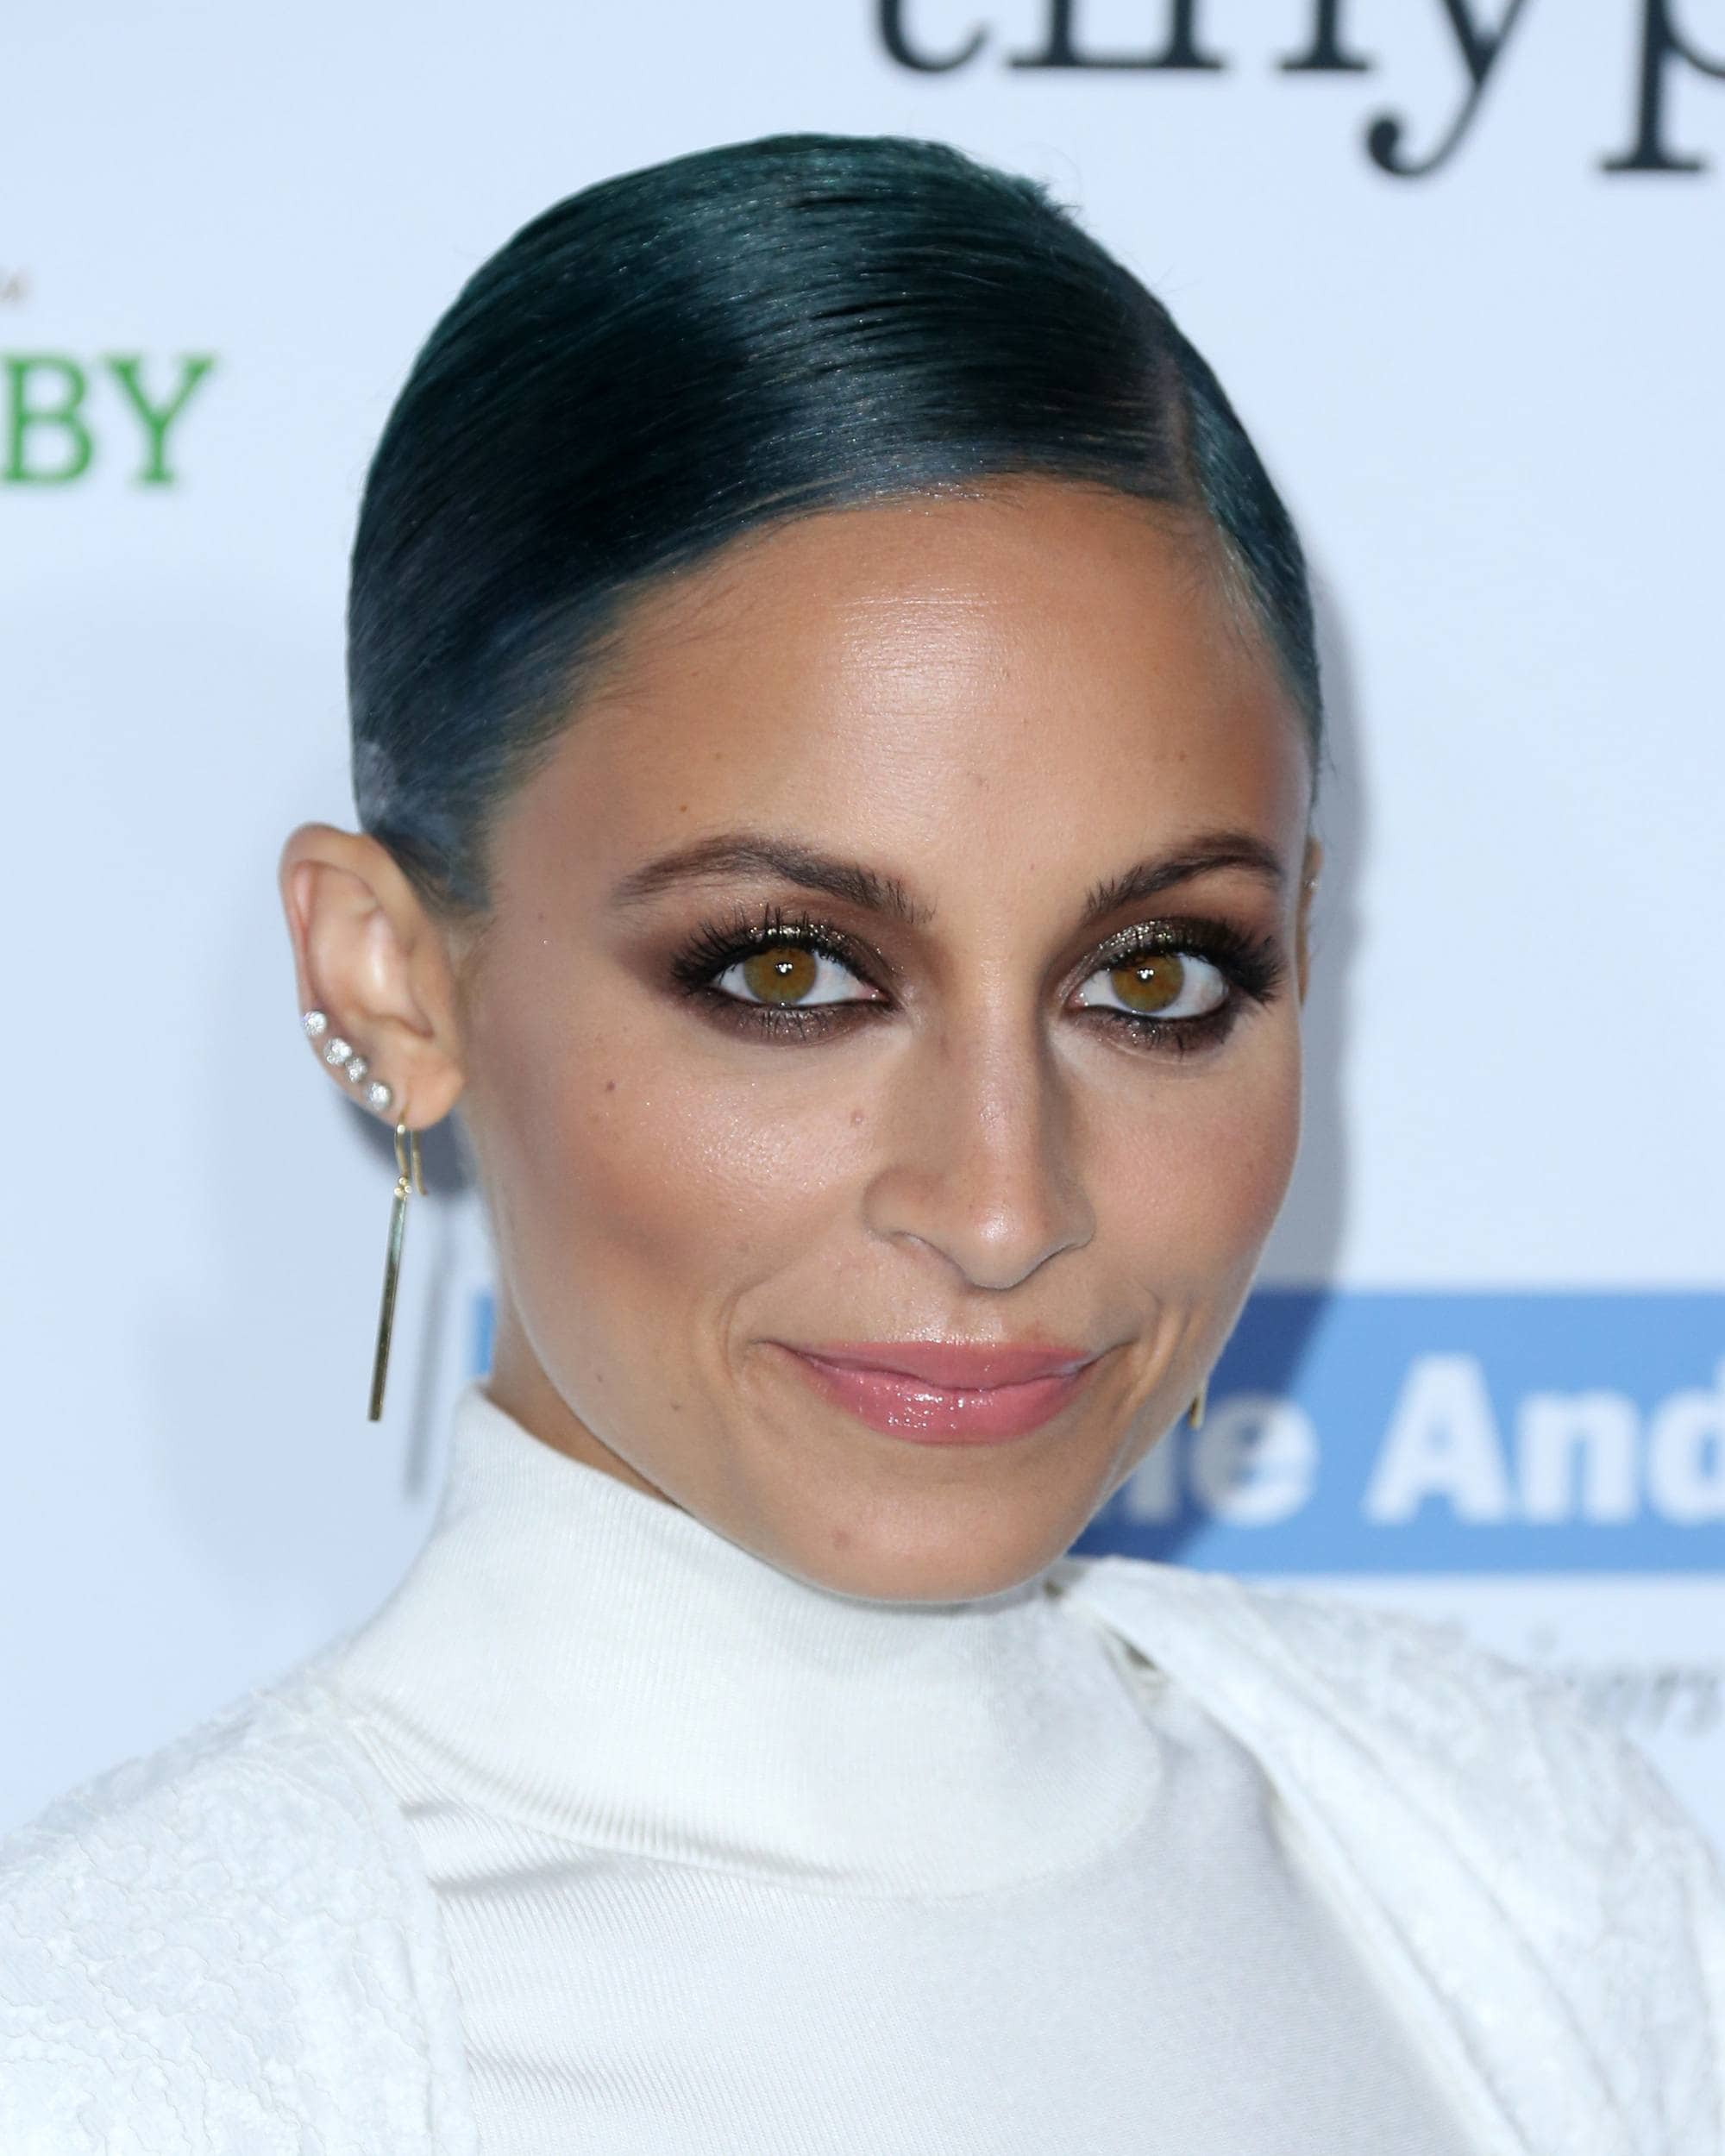 Blue hair: Nicole Richie with dyed blue hair in a sleek wet-look combover updo